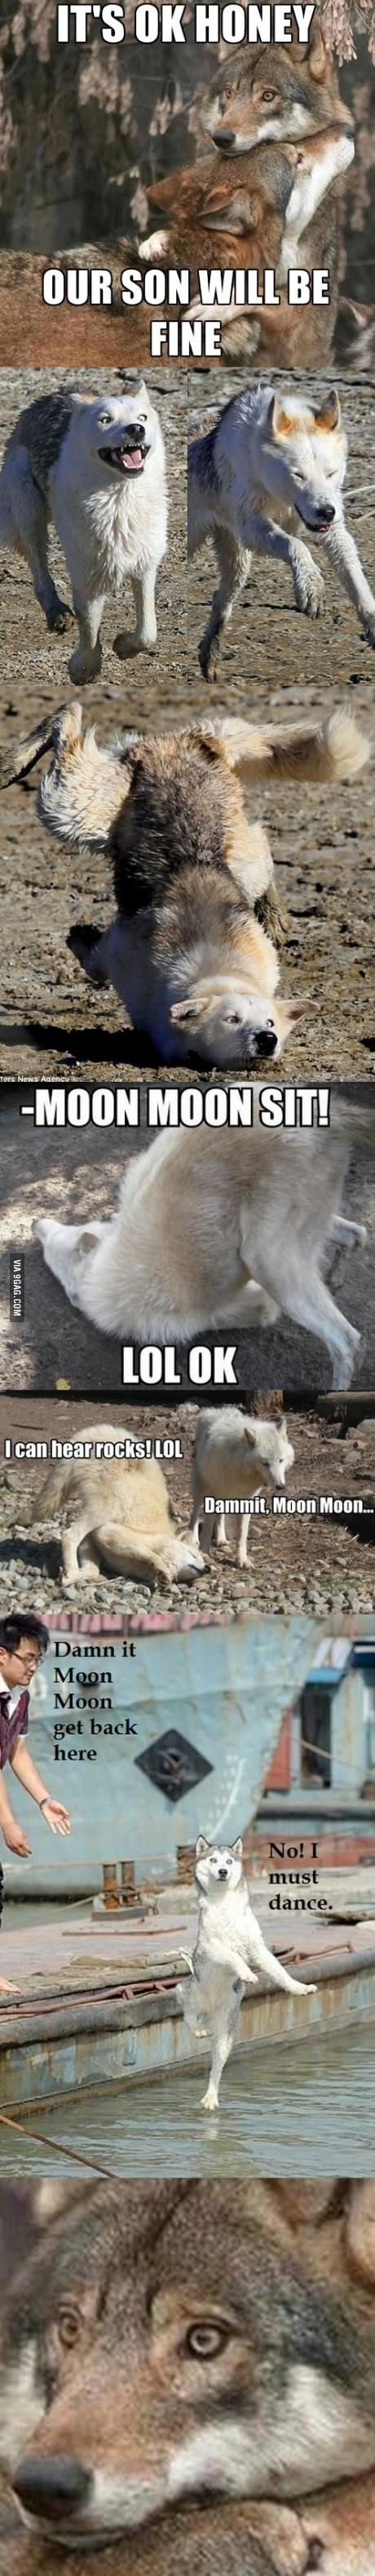 Dammit Moon Moon!>>>> No no no no it's ....GAMMIT MOON MOON!!!!!!>>> YASSSS